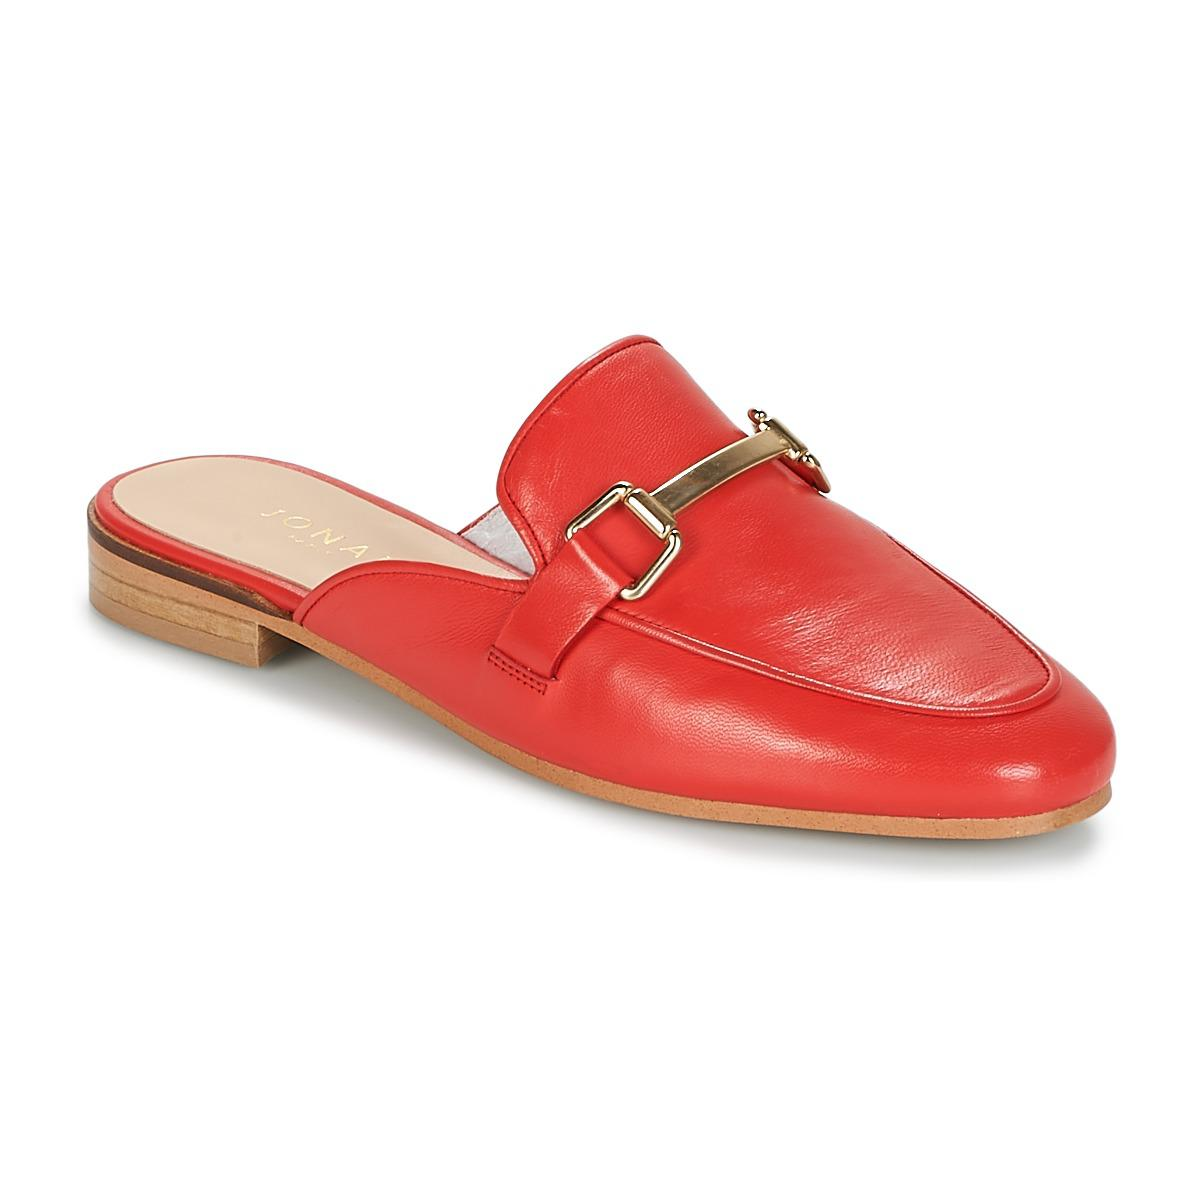 1c477aca94aa6 Jonak Simone Women s Mules   Casual Shoes In Red in Red - Lyst